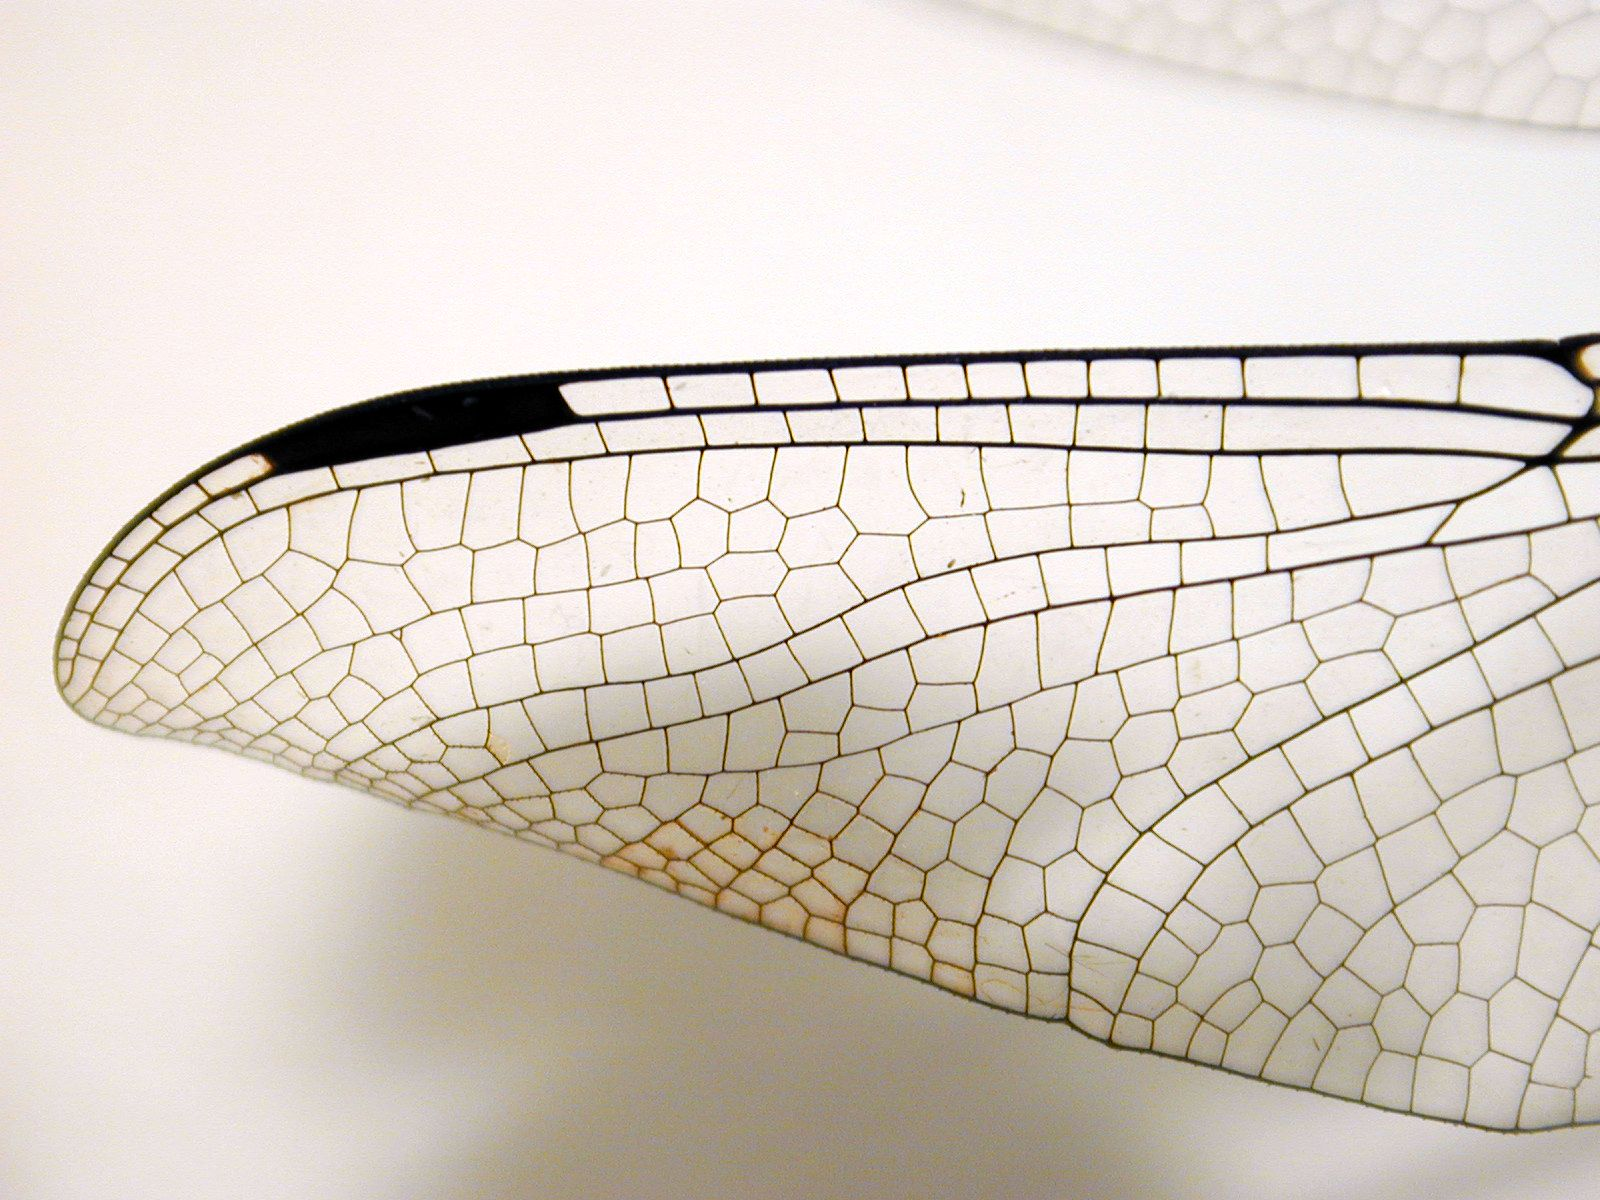 Insect wing texture - photo#8